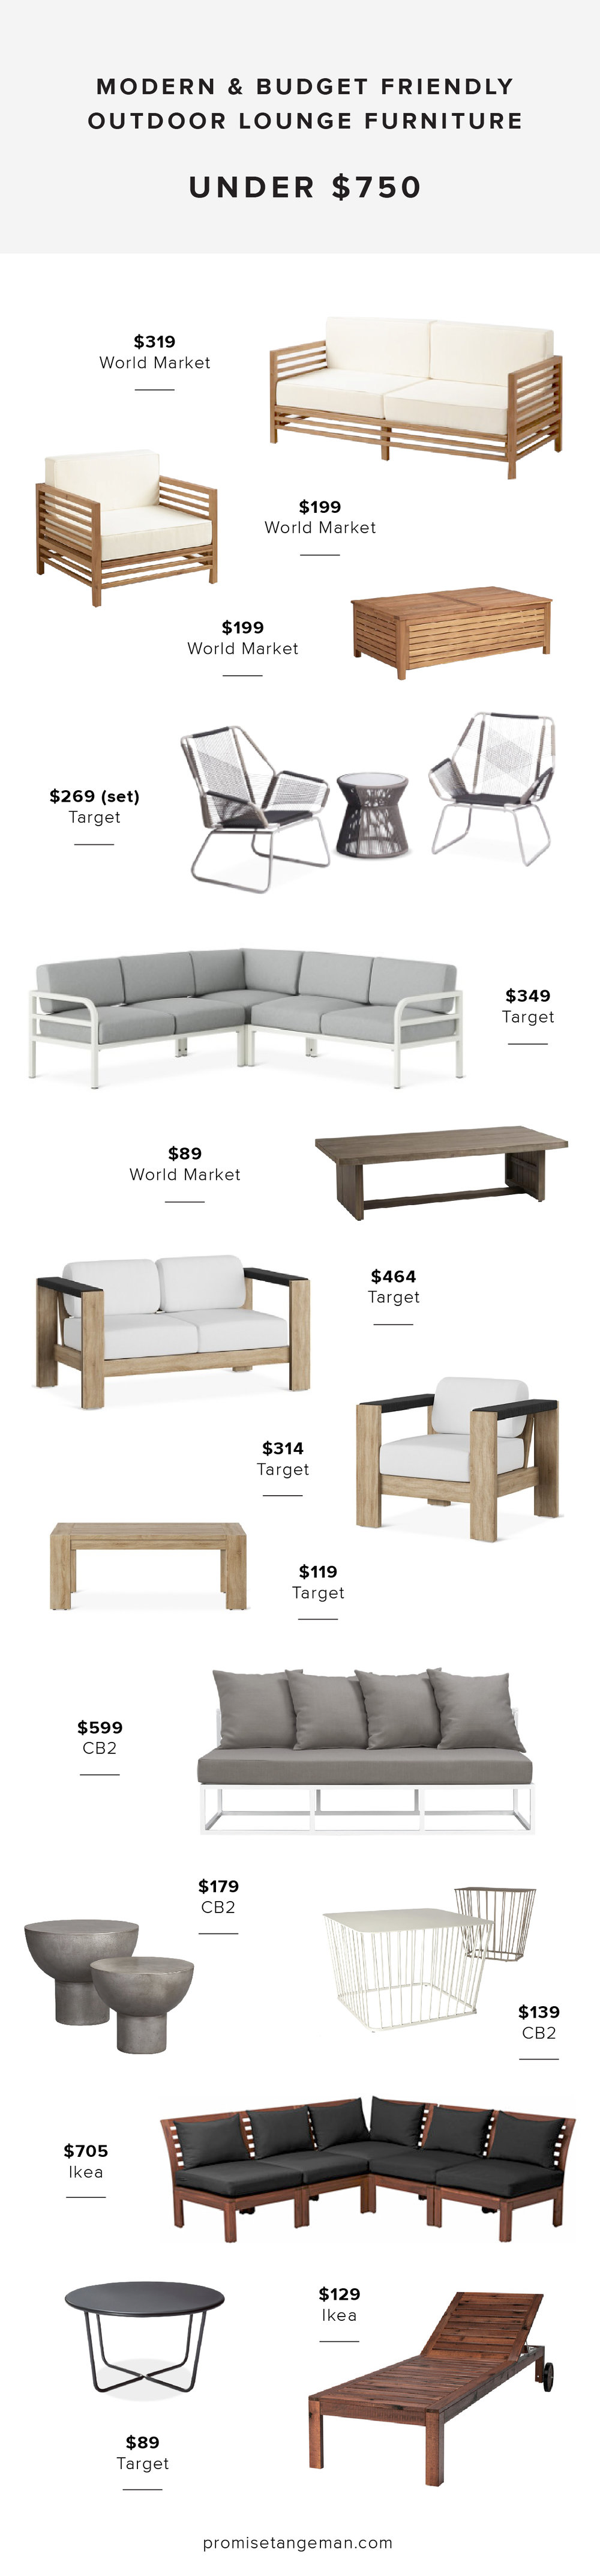 modern budget outdoor lounge furniture